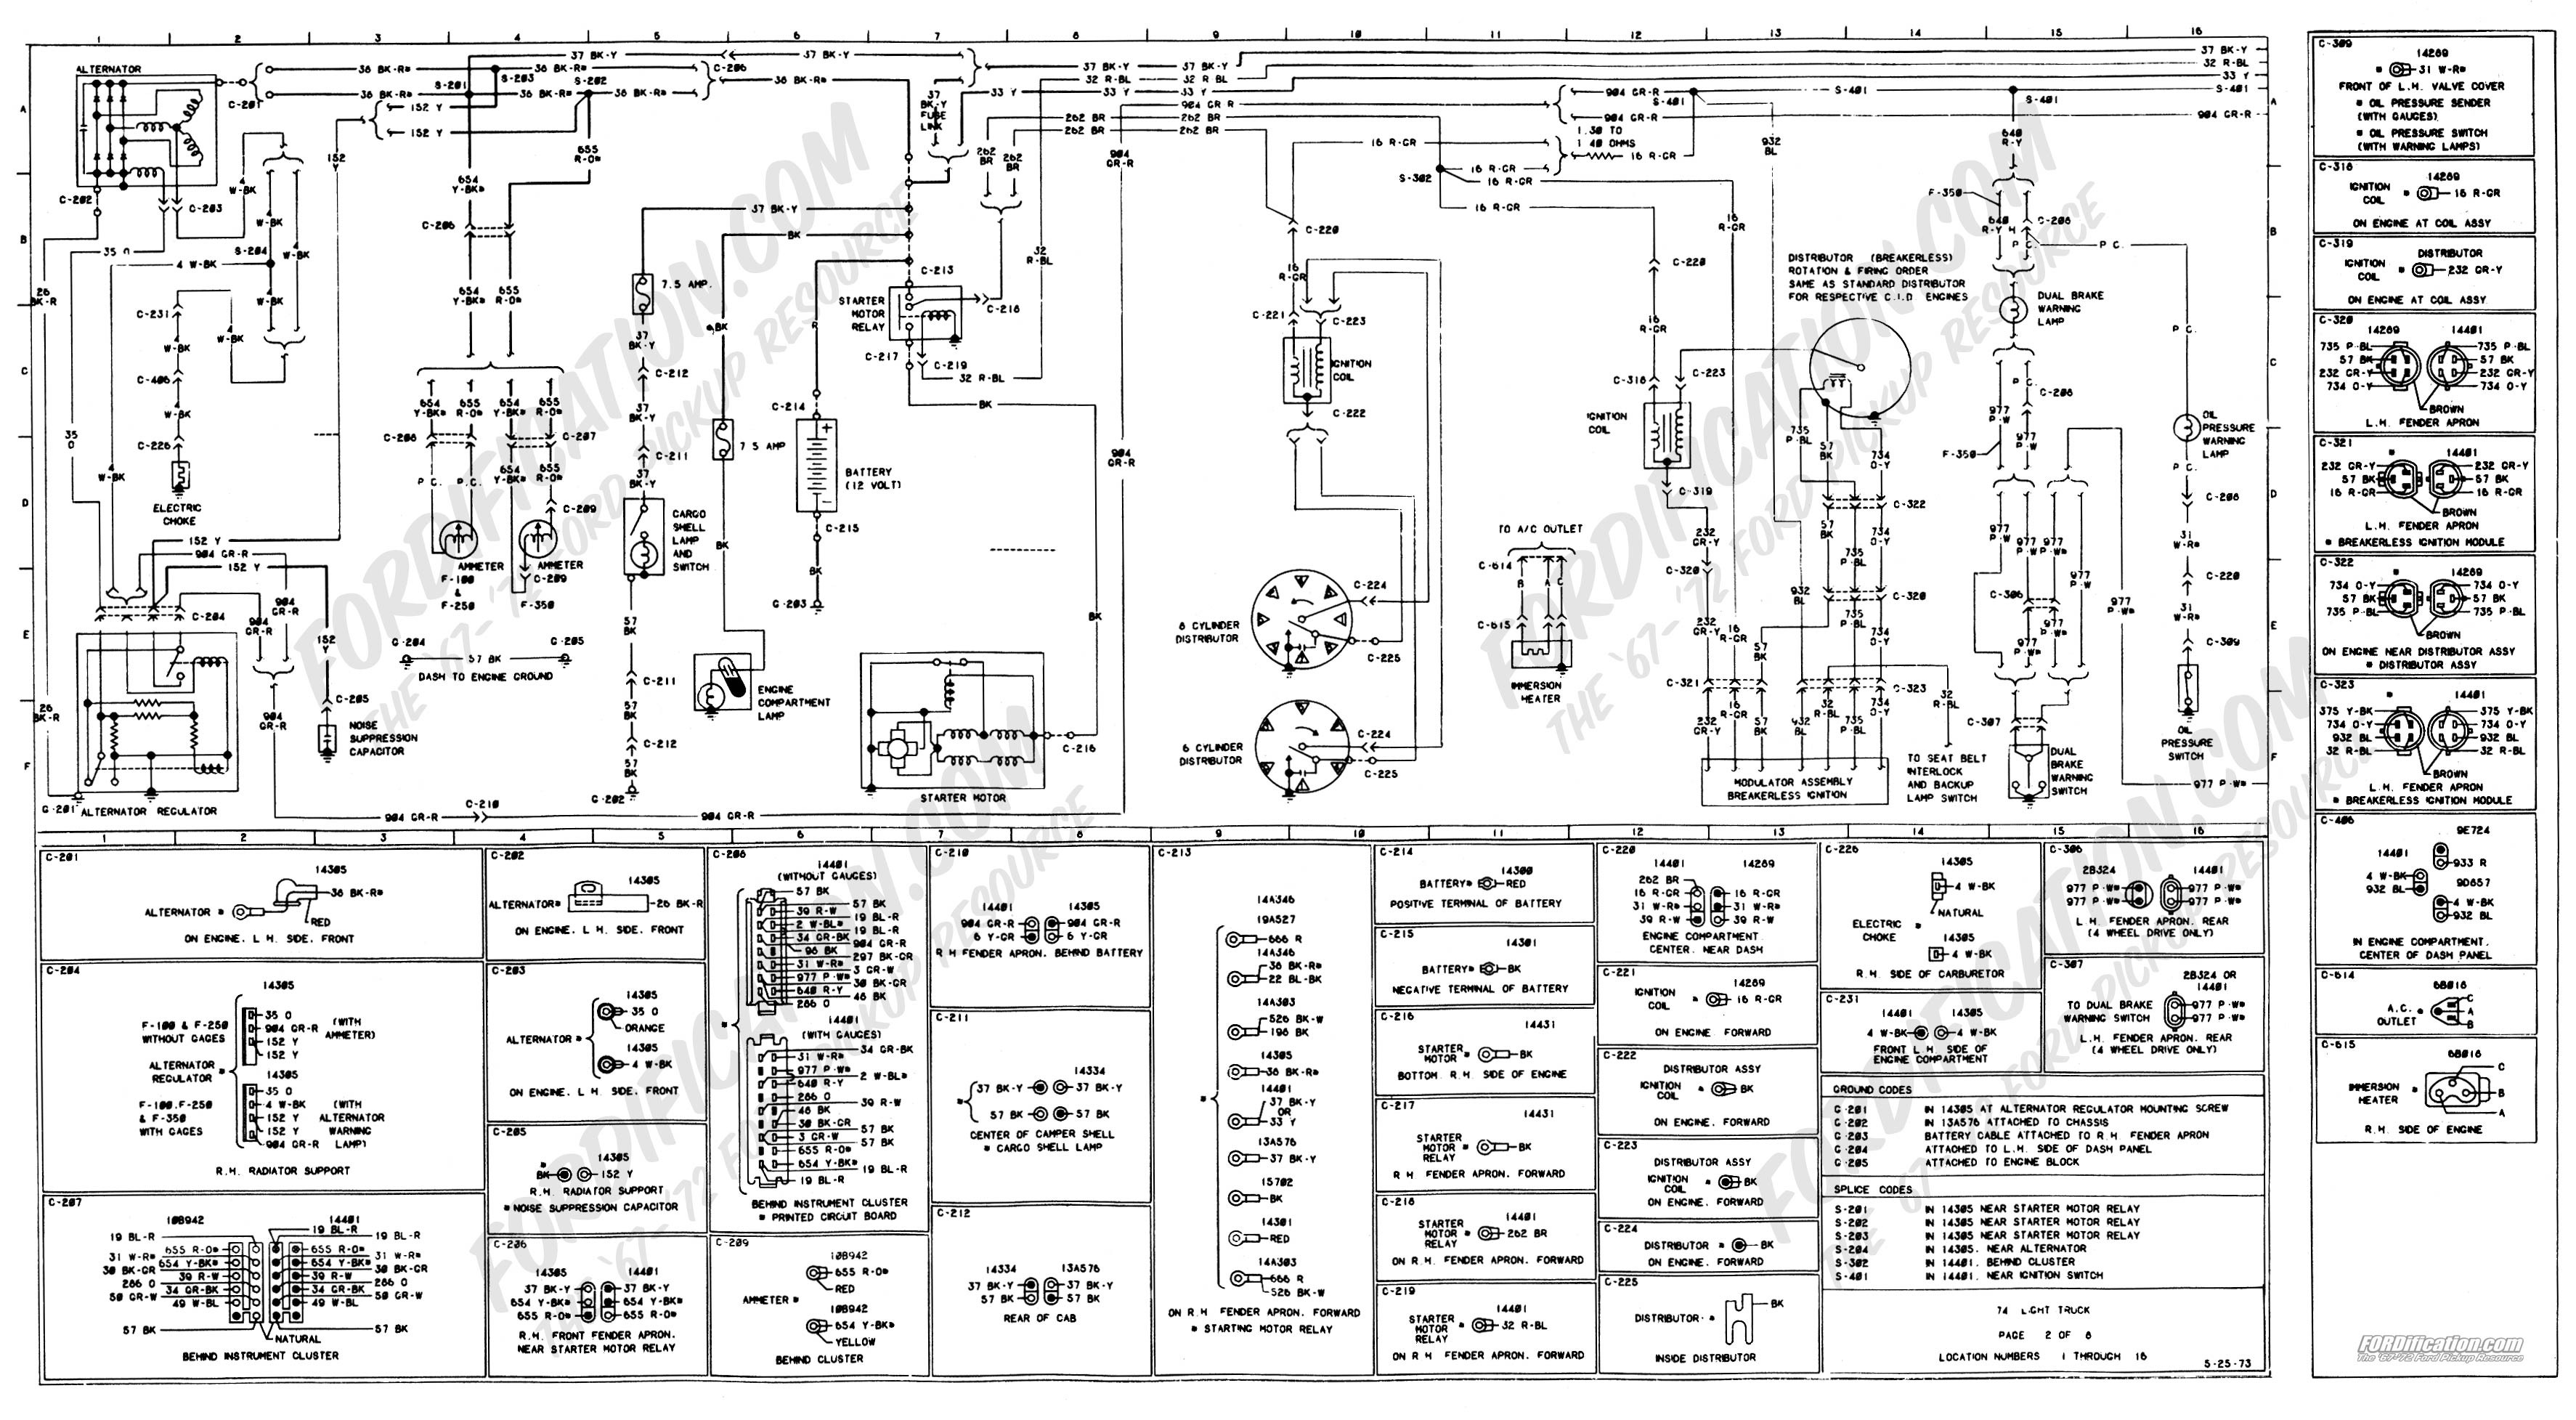 Ford Truck Wiring Diagrams Free 1973 1979 ford Truck Wiring Diagrams &  Schematics fordification Of Ford